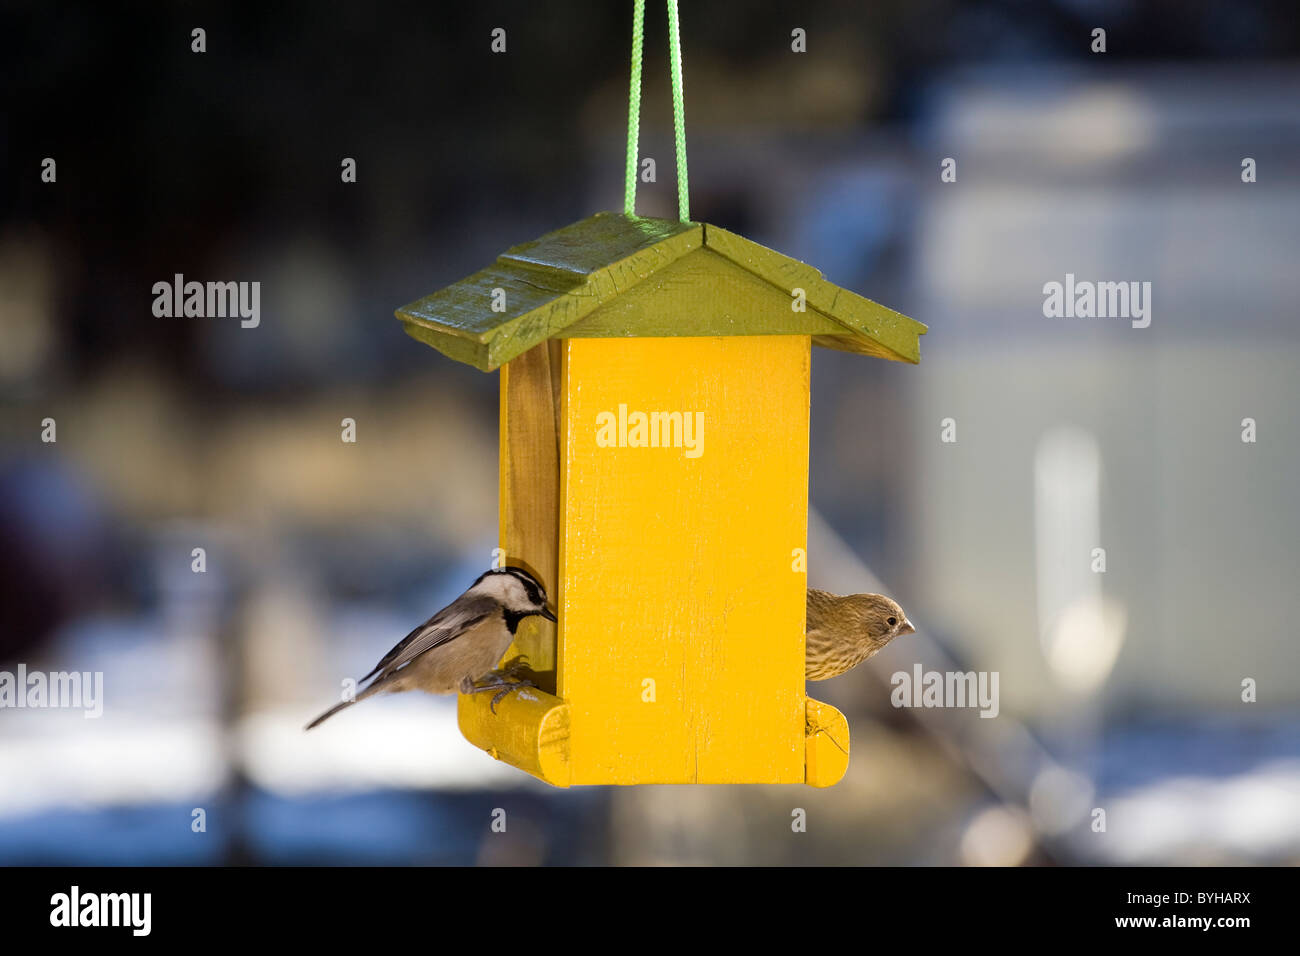 A chickadee and a house fince feed from a yellow bird feeder on a winter day - Stock Image